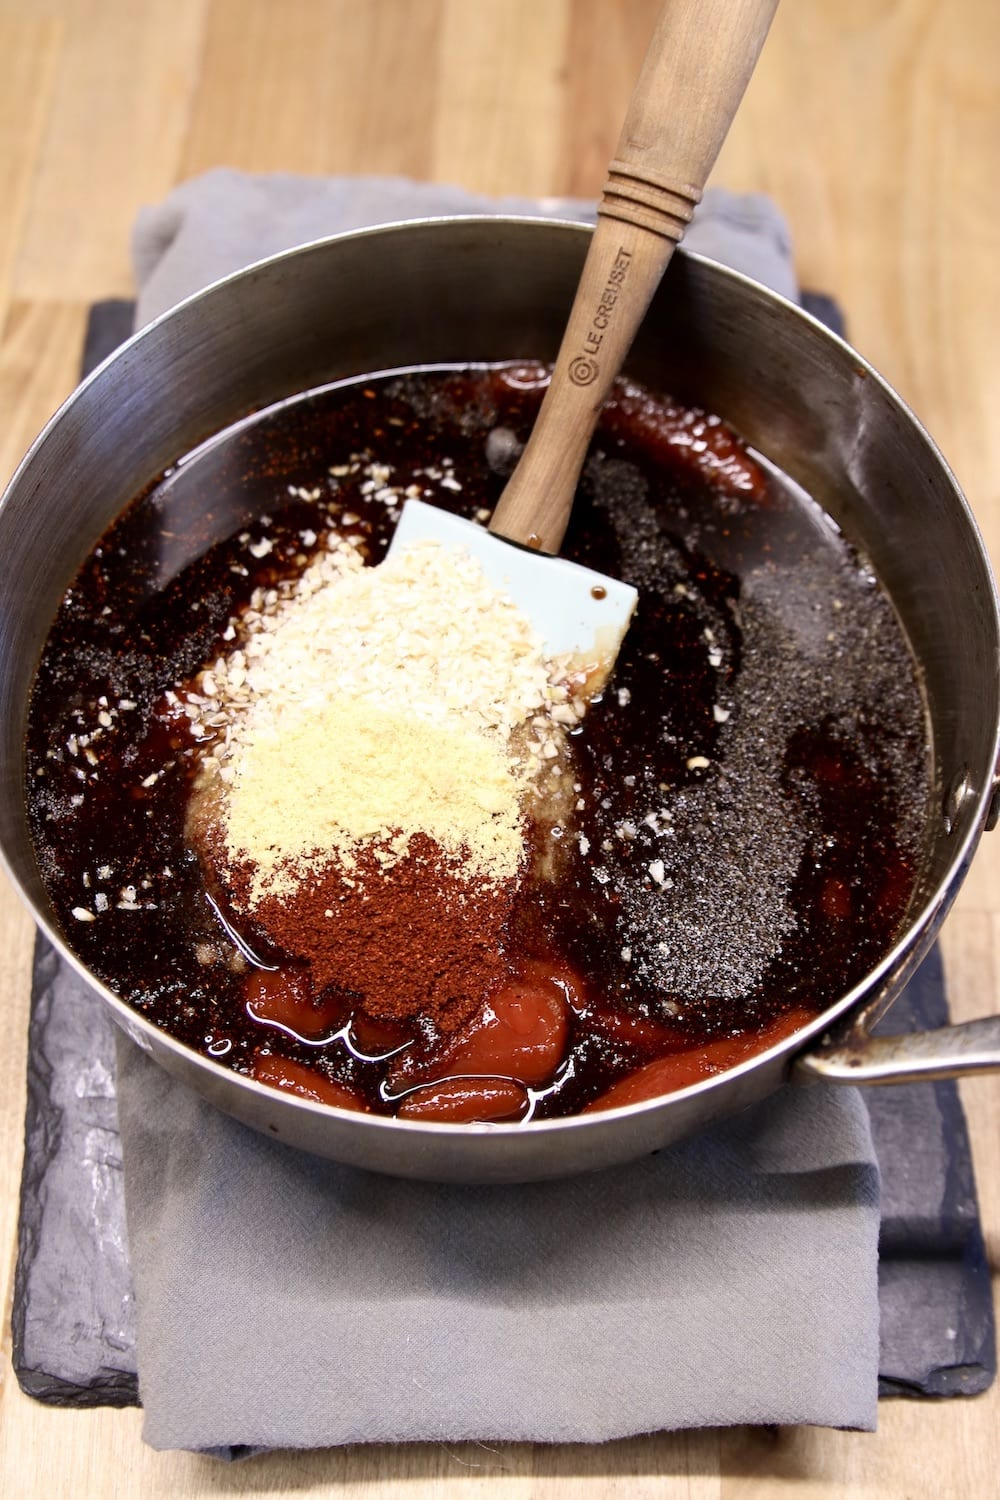 Ketchup, worcestershire sauce, spices in a pan with a spatula